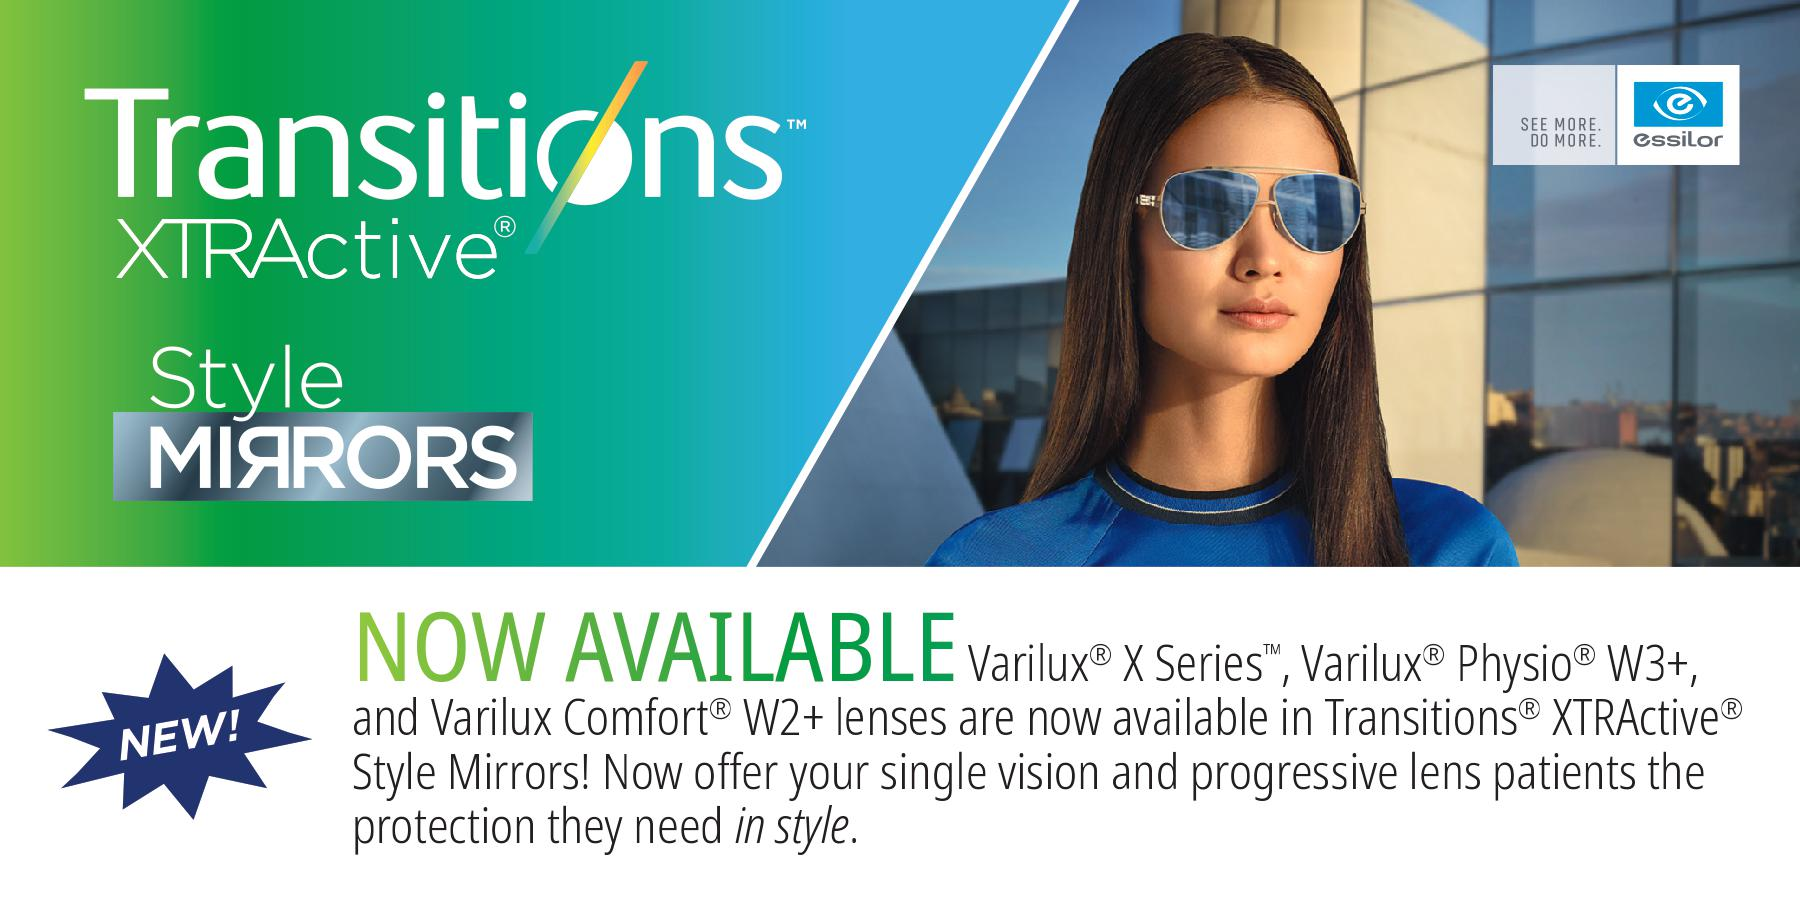 Transitions XTRActive Now Available in new lens styles at IcareLabs